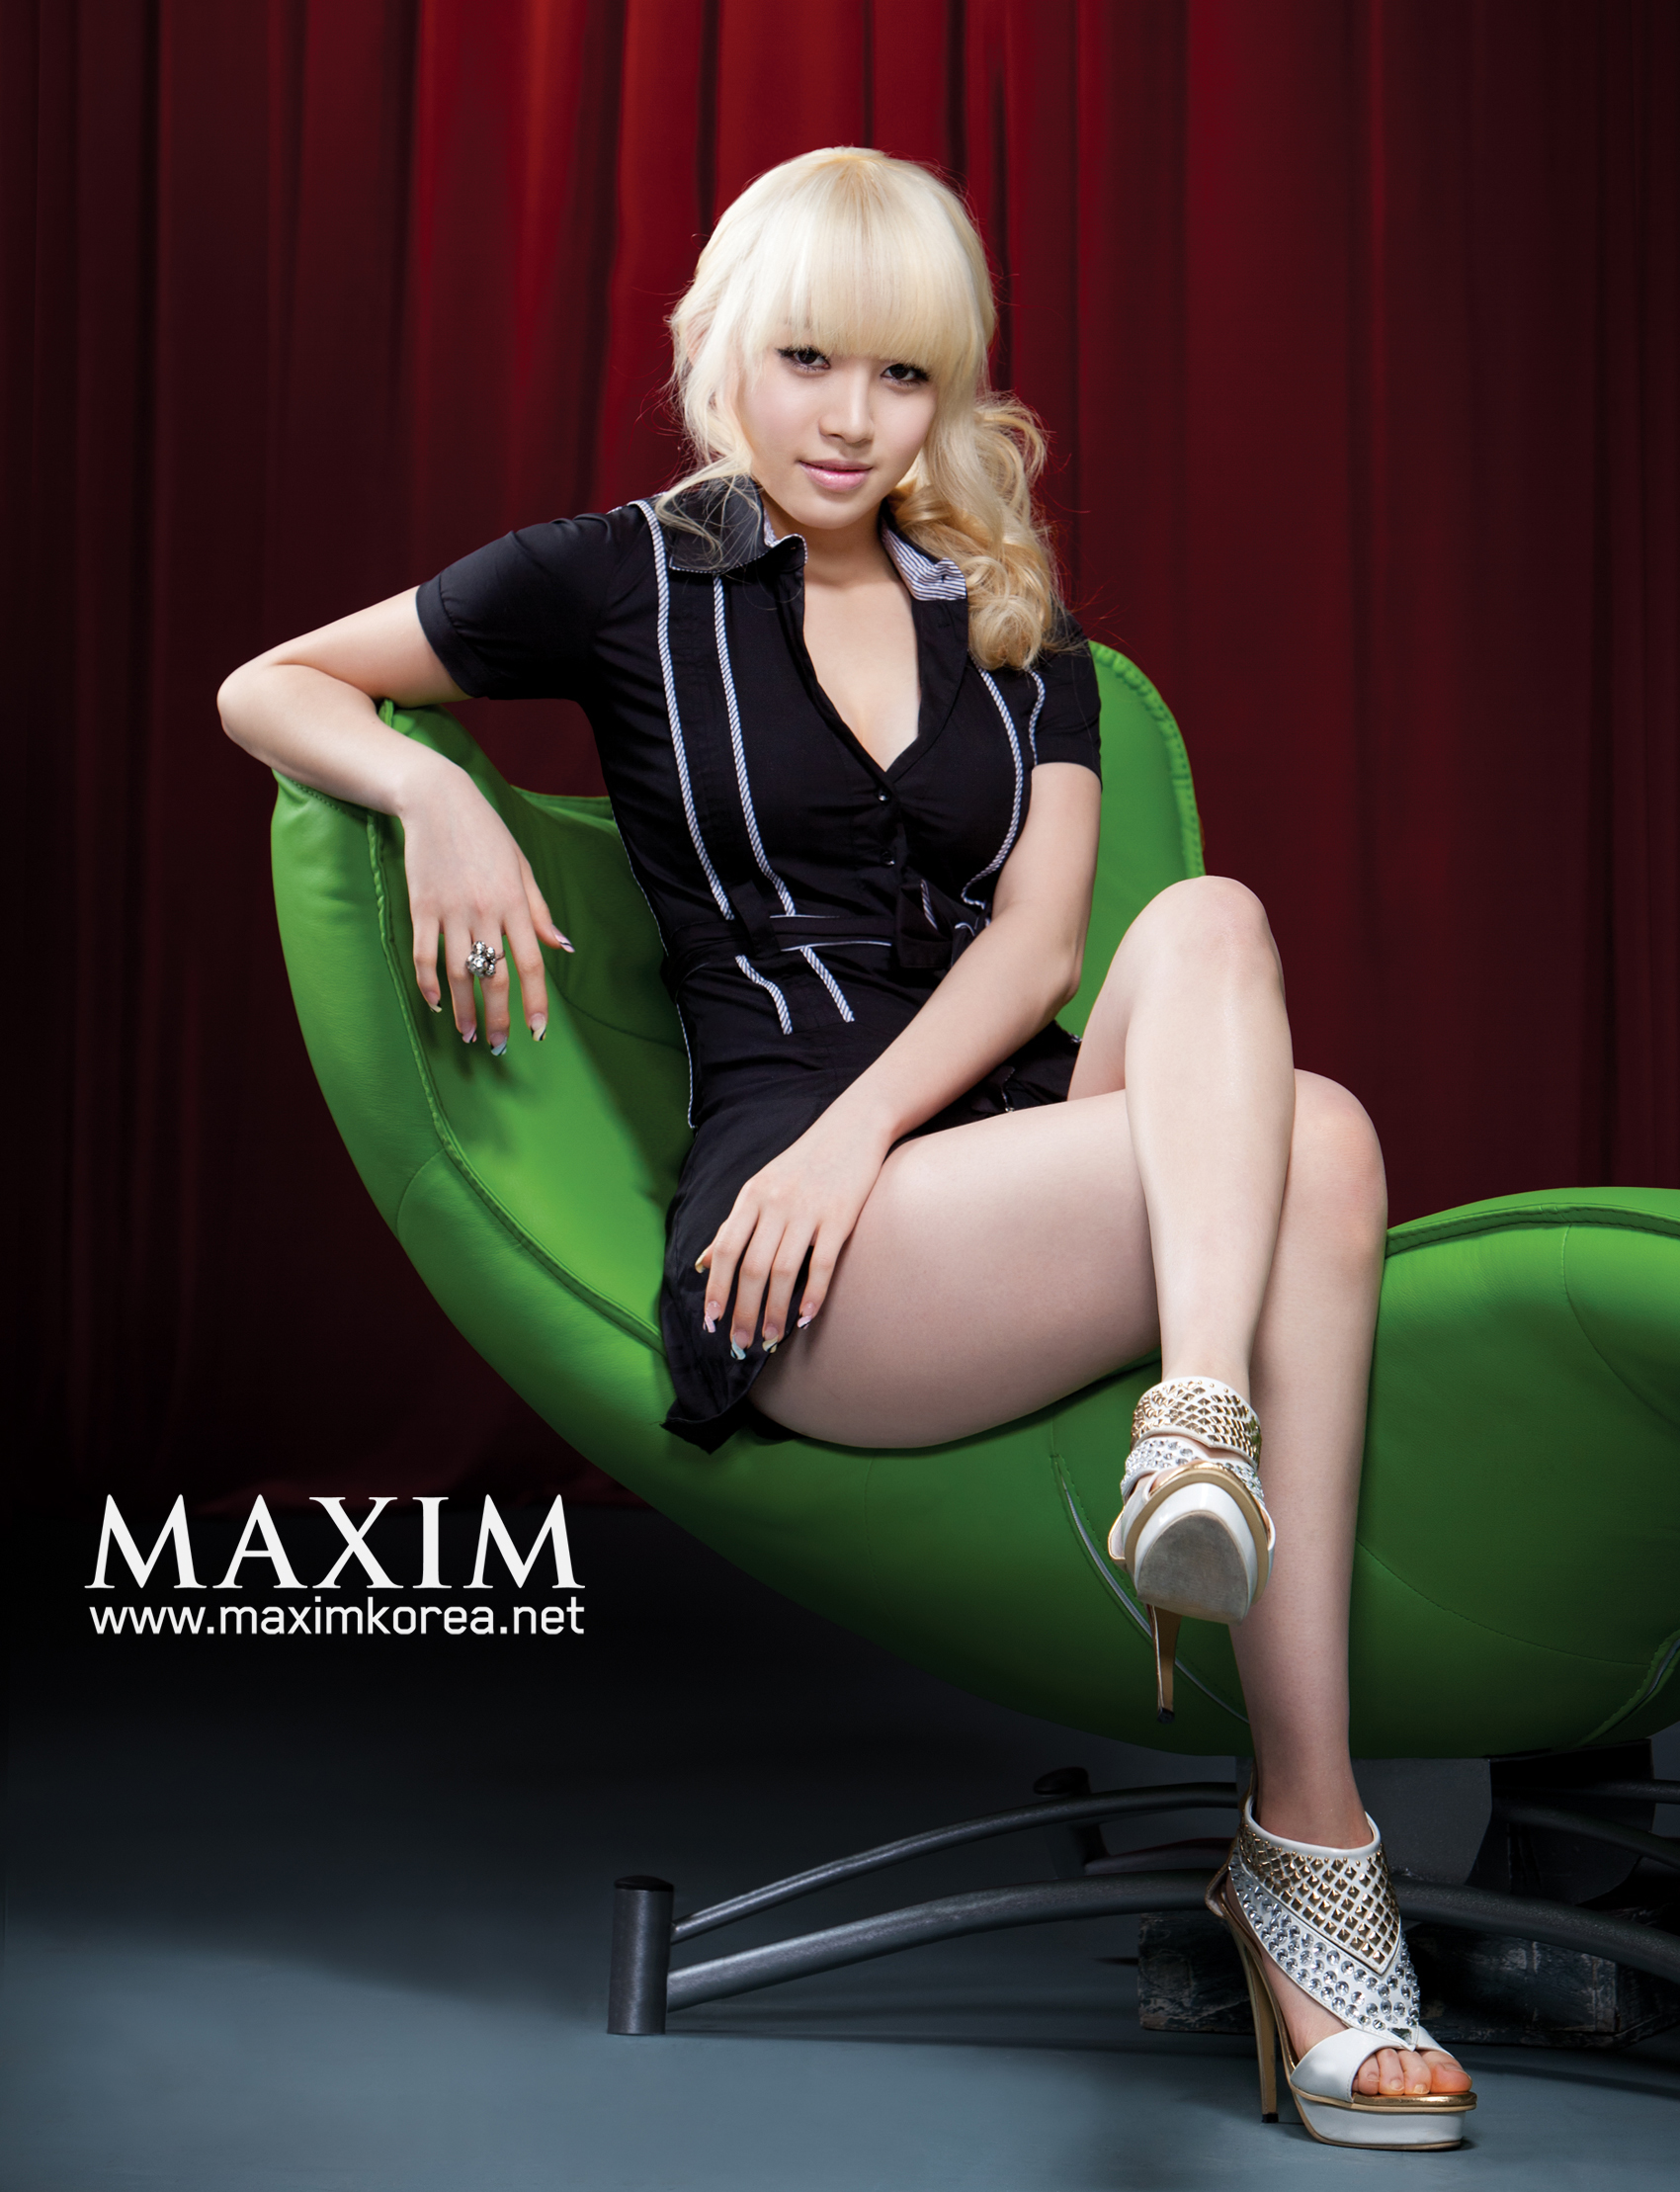 blondes woman Maxim magazine HD Wallpaper